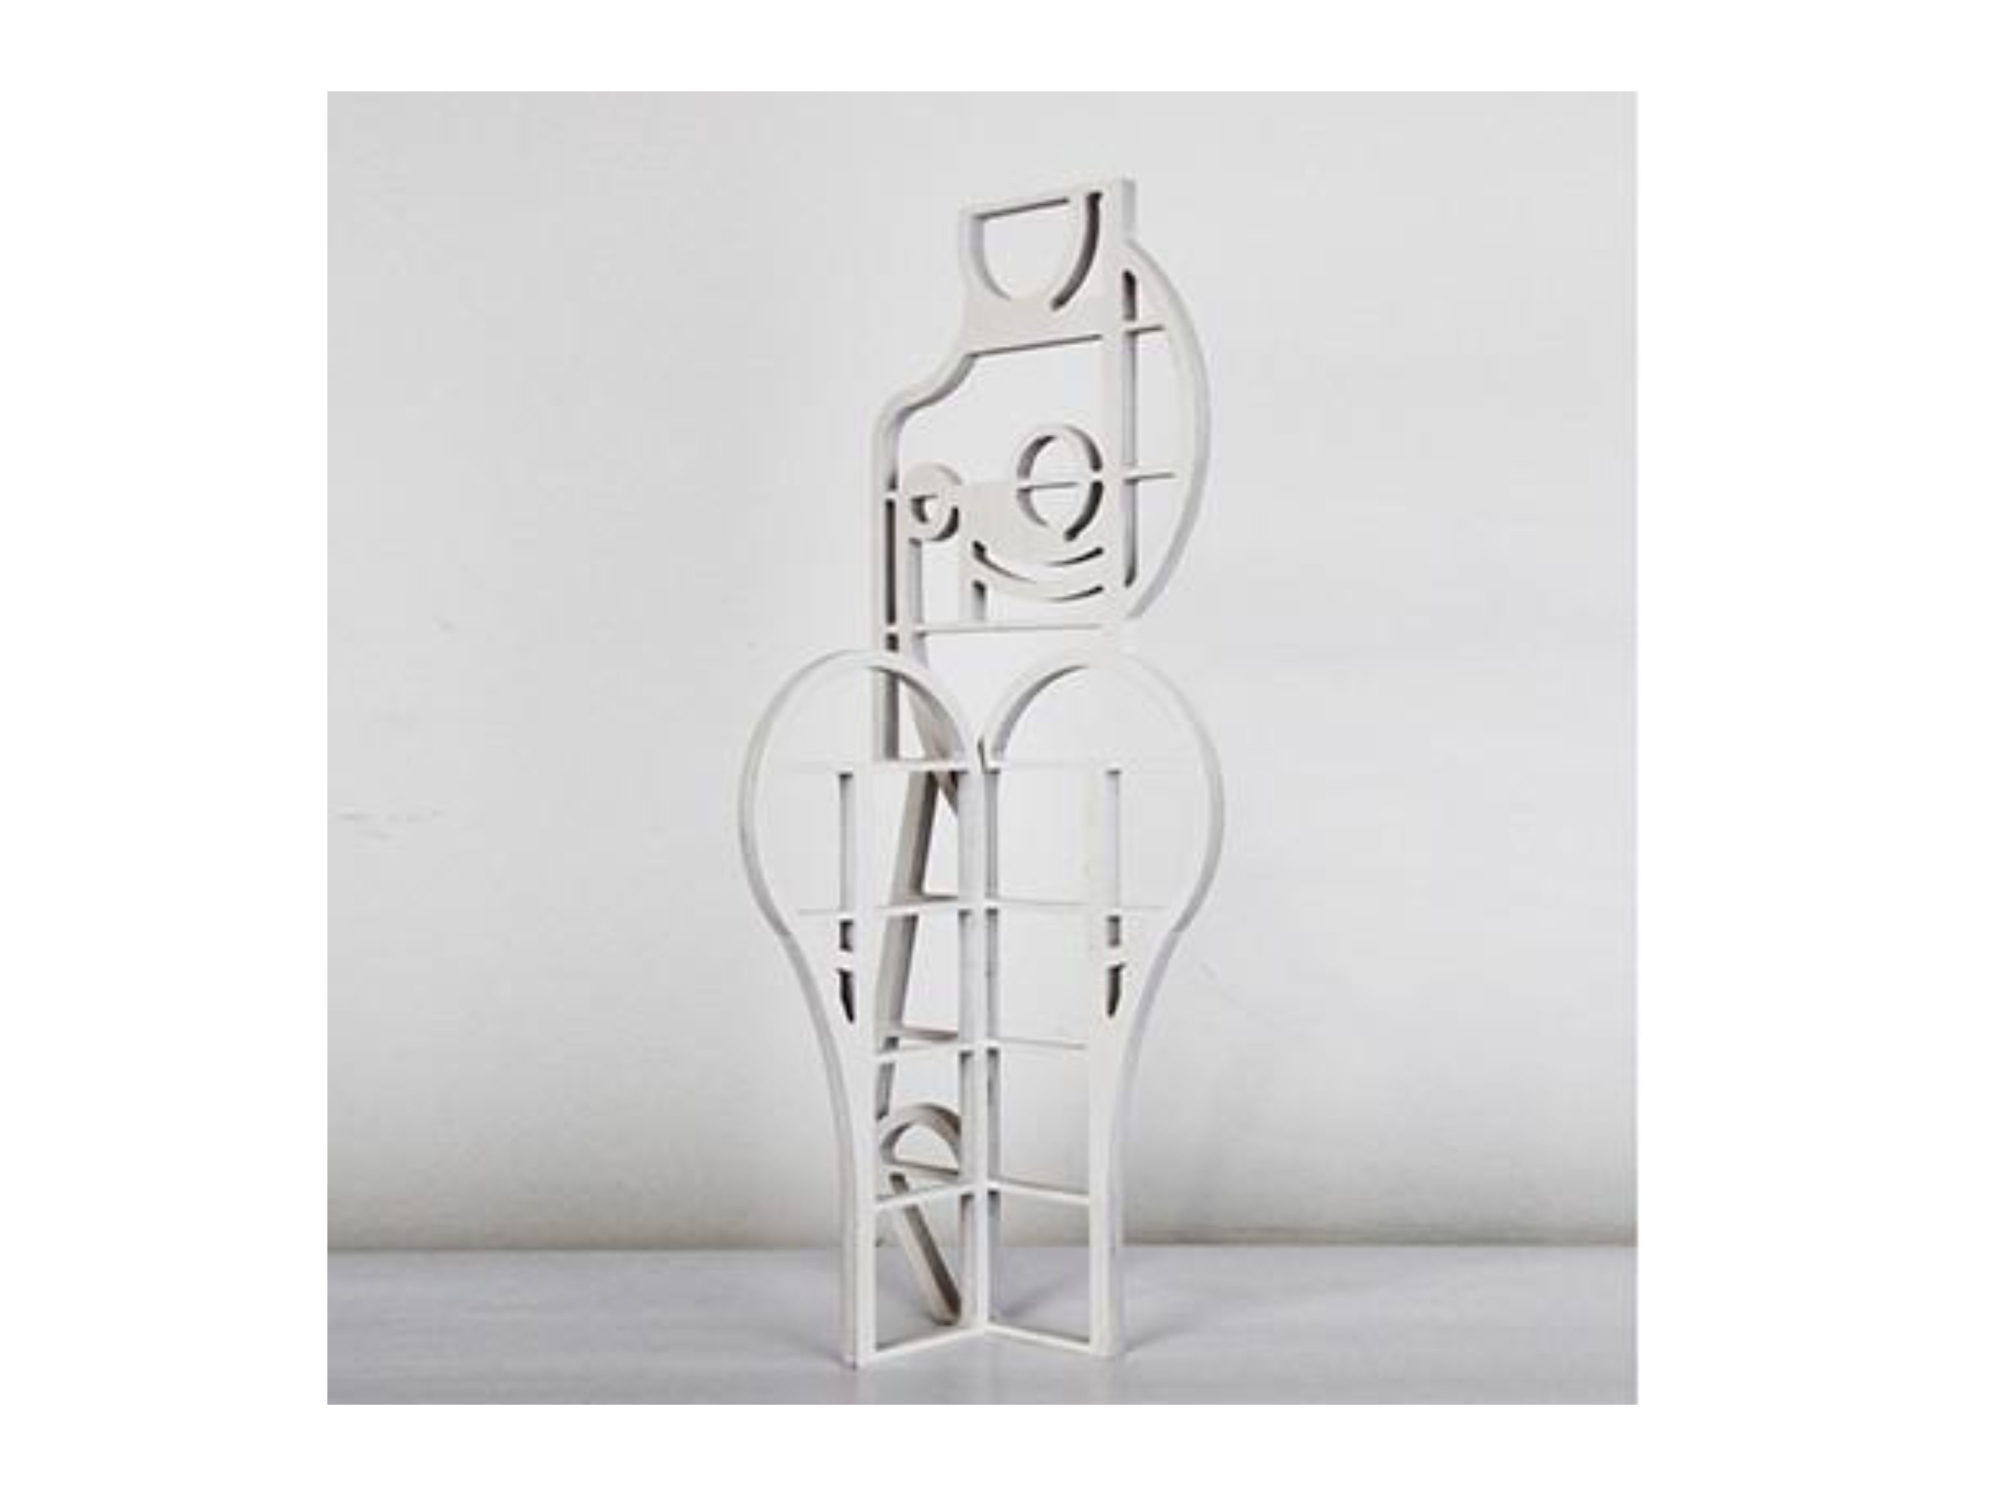 White abstract sculpture with curved lines that resemble a woman's torso and legs.